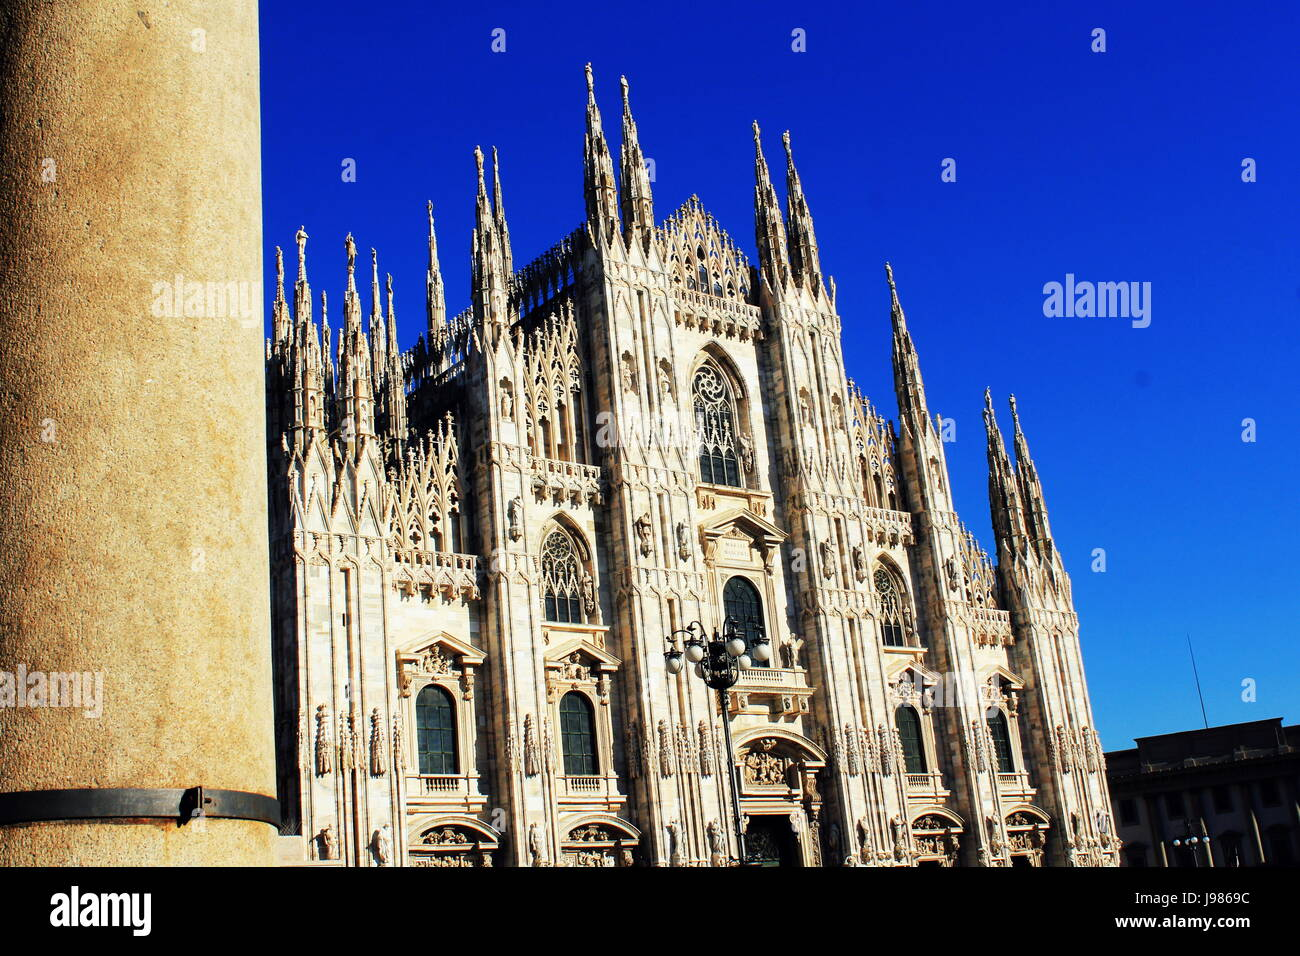 Milan Cathedral, Duomo di Milano, one of the largest churches in the world - Stock Image